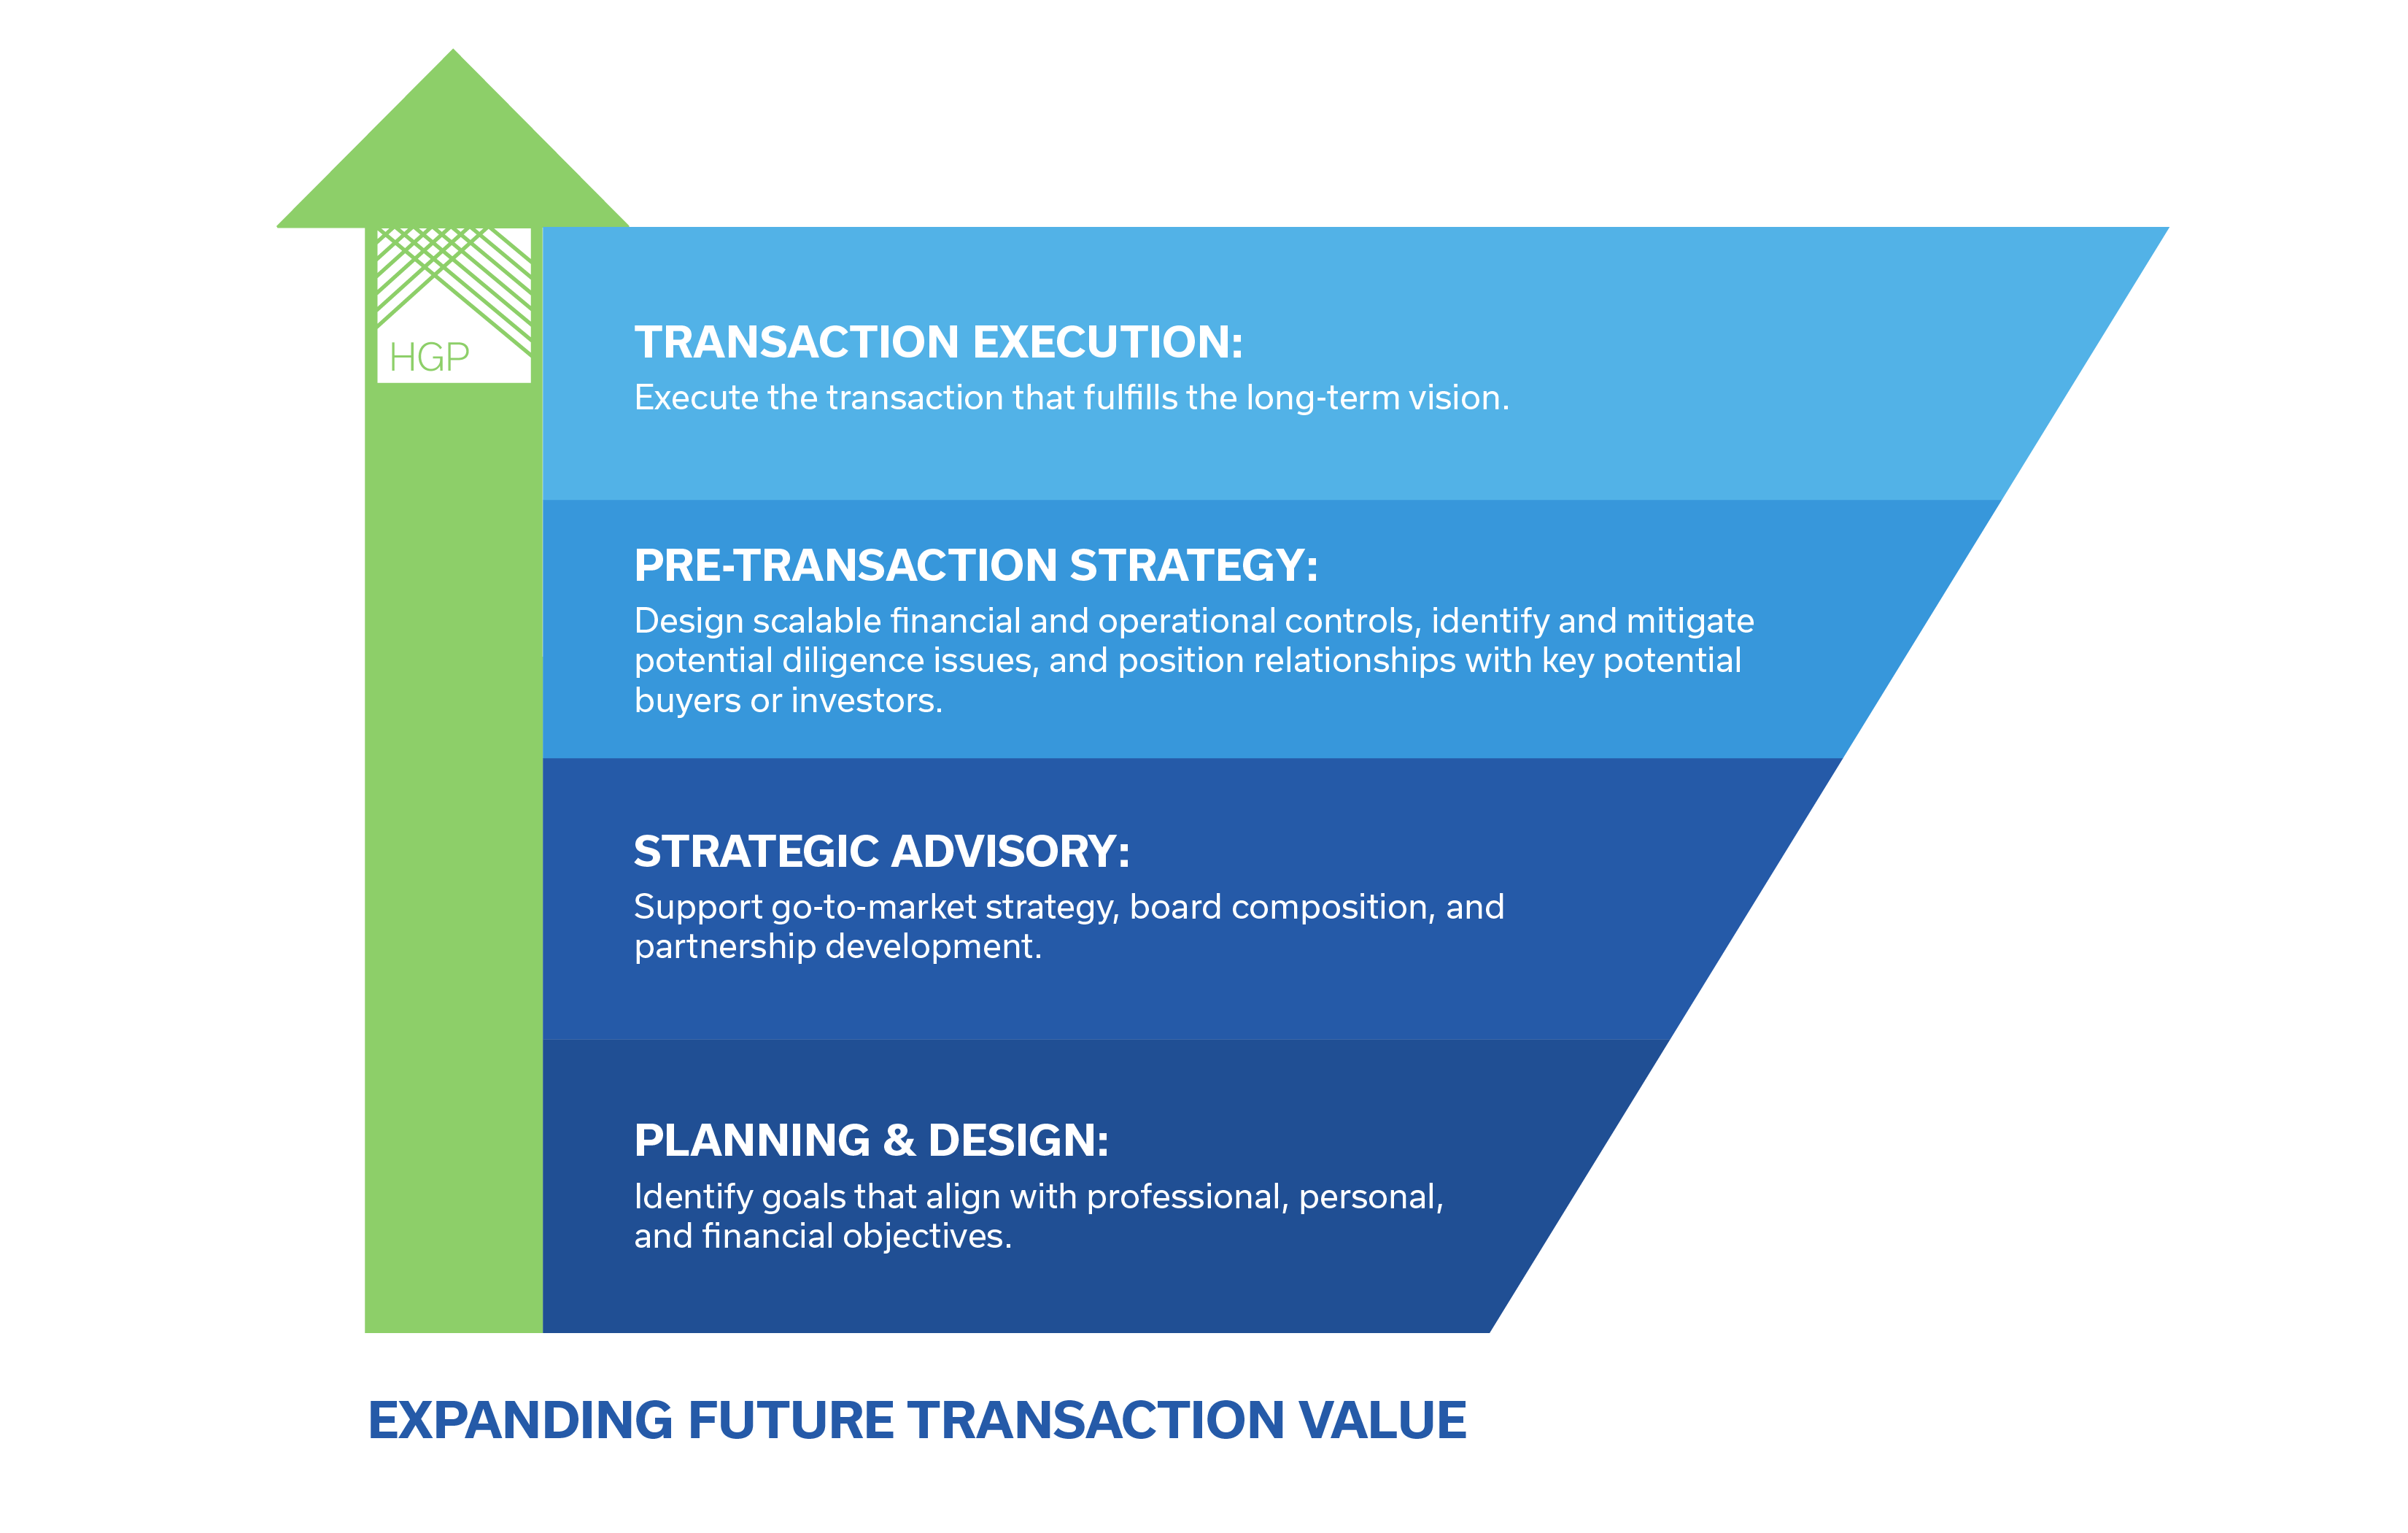 HGP Pre-Transaction Growth Strategy Process